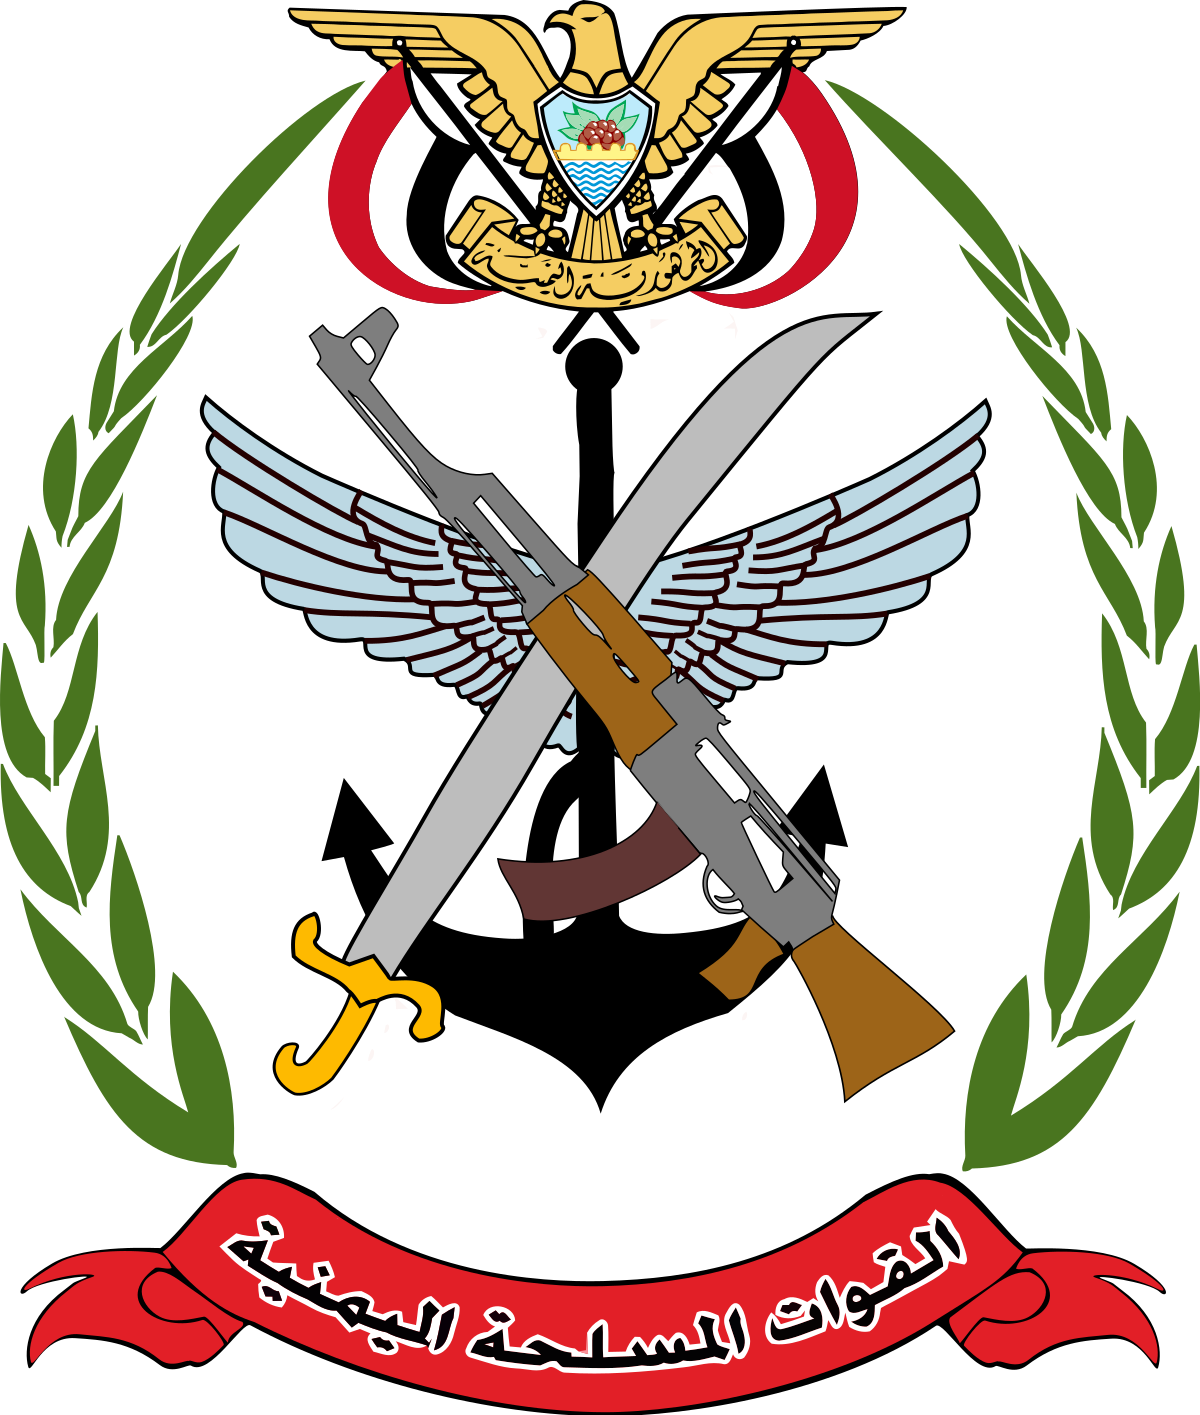 banner transparent stock Republic of yemen armed. Wars clipart military dictatorship